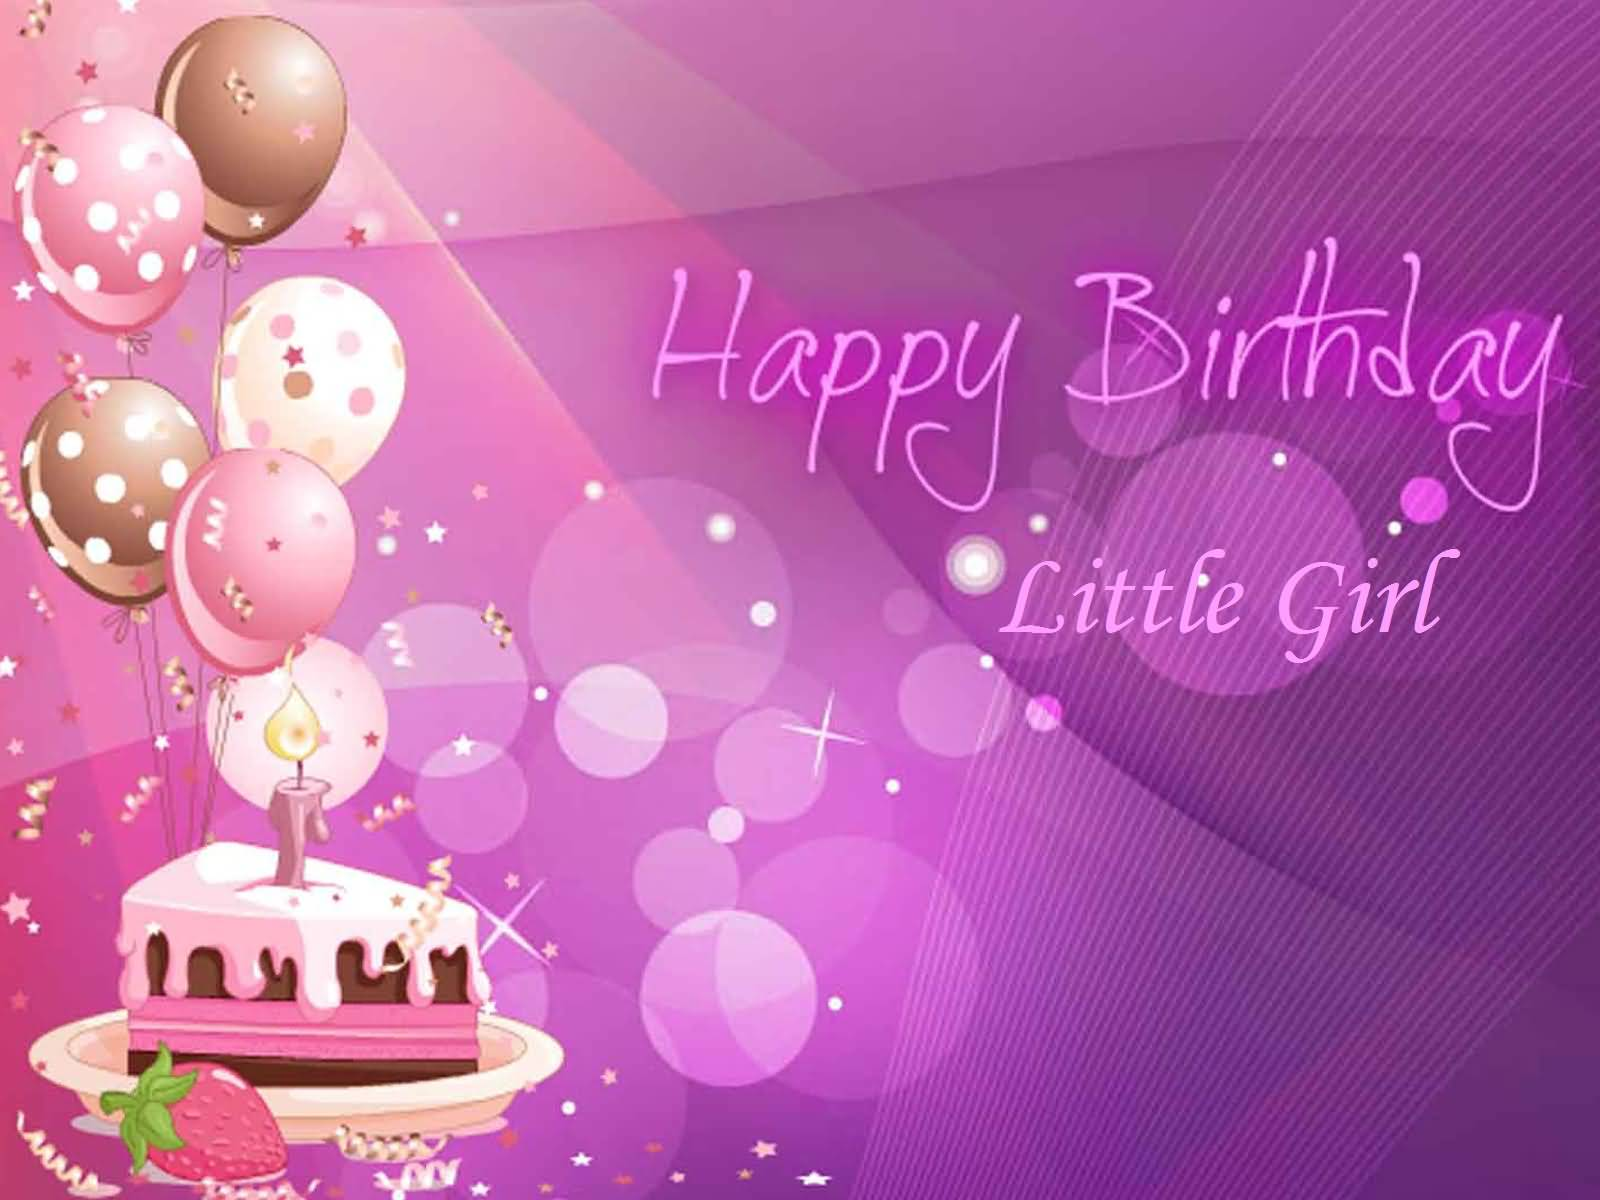 Nice Wishes For Little Girl Happy Birthday E-Card - NiceWishes